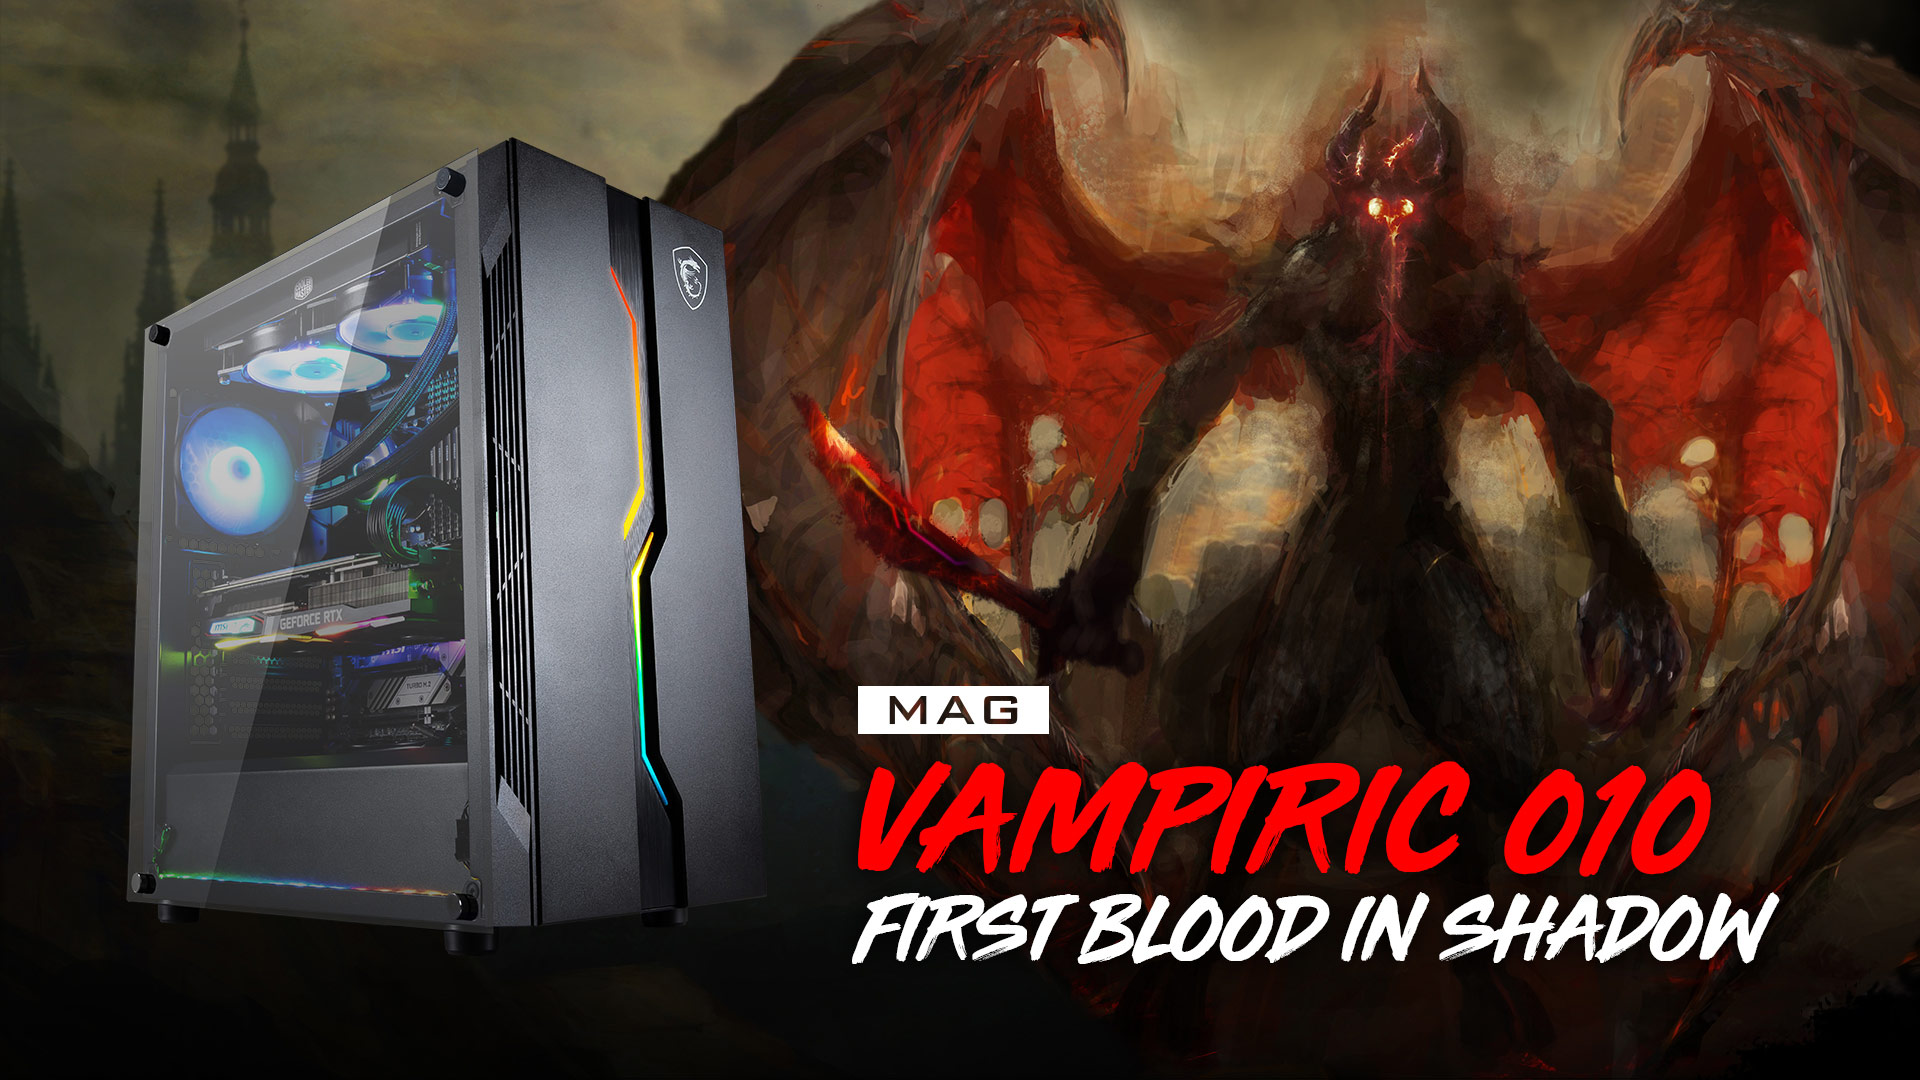 MSI MAG vampiric overview